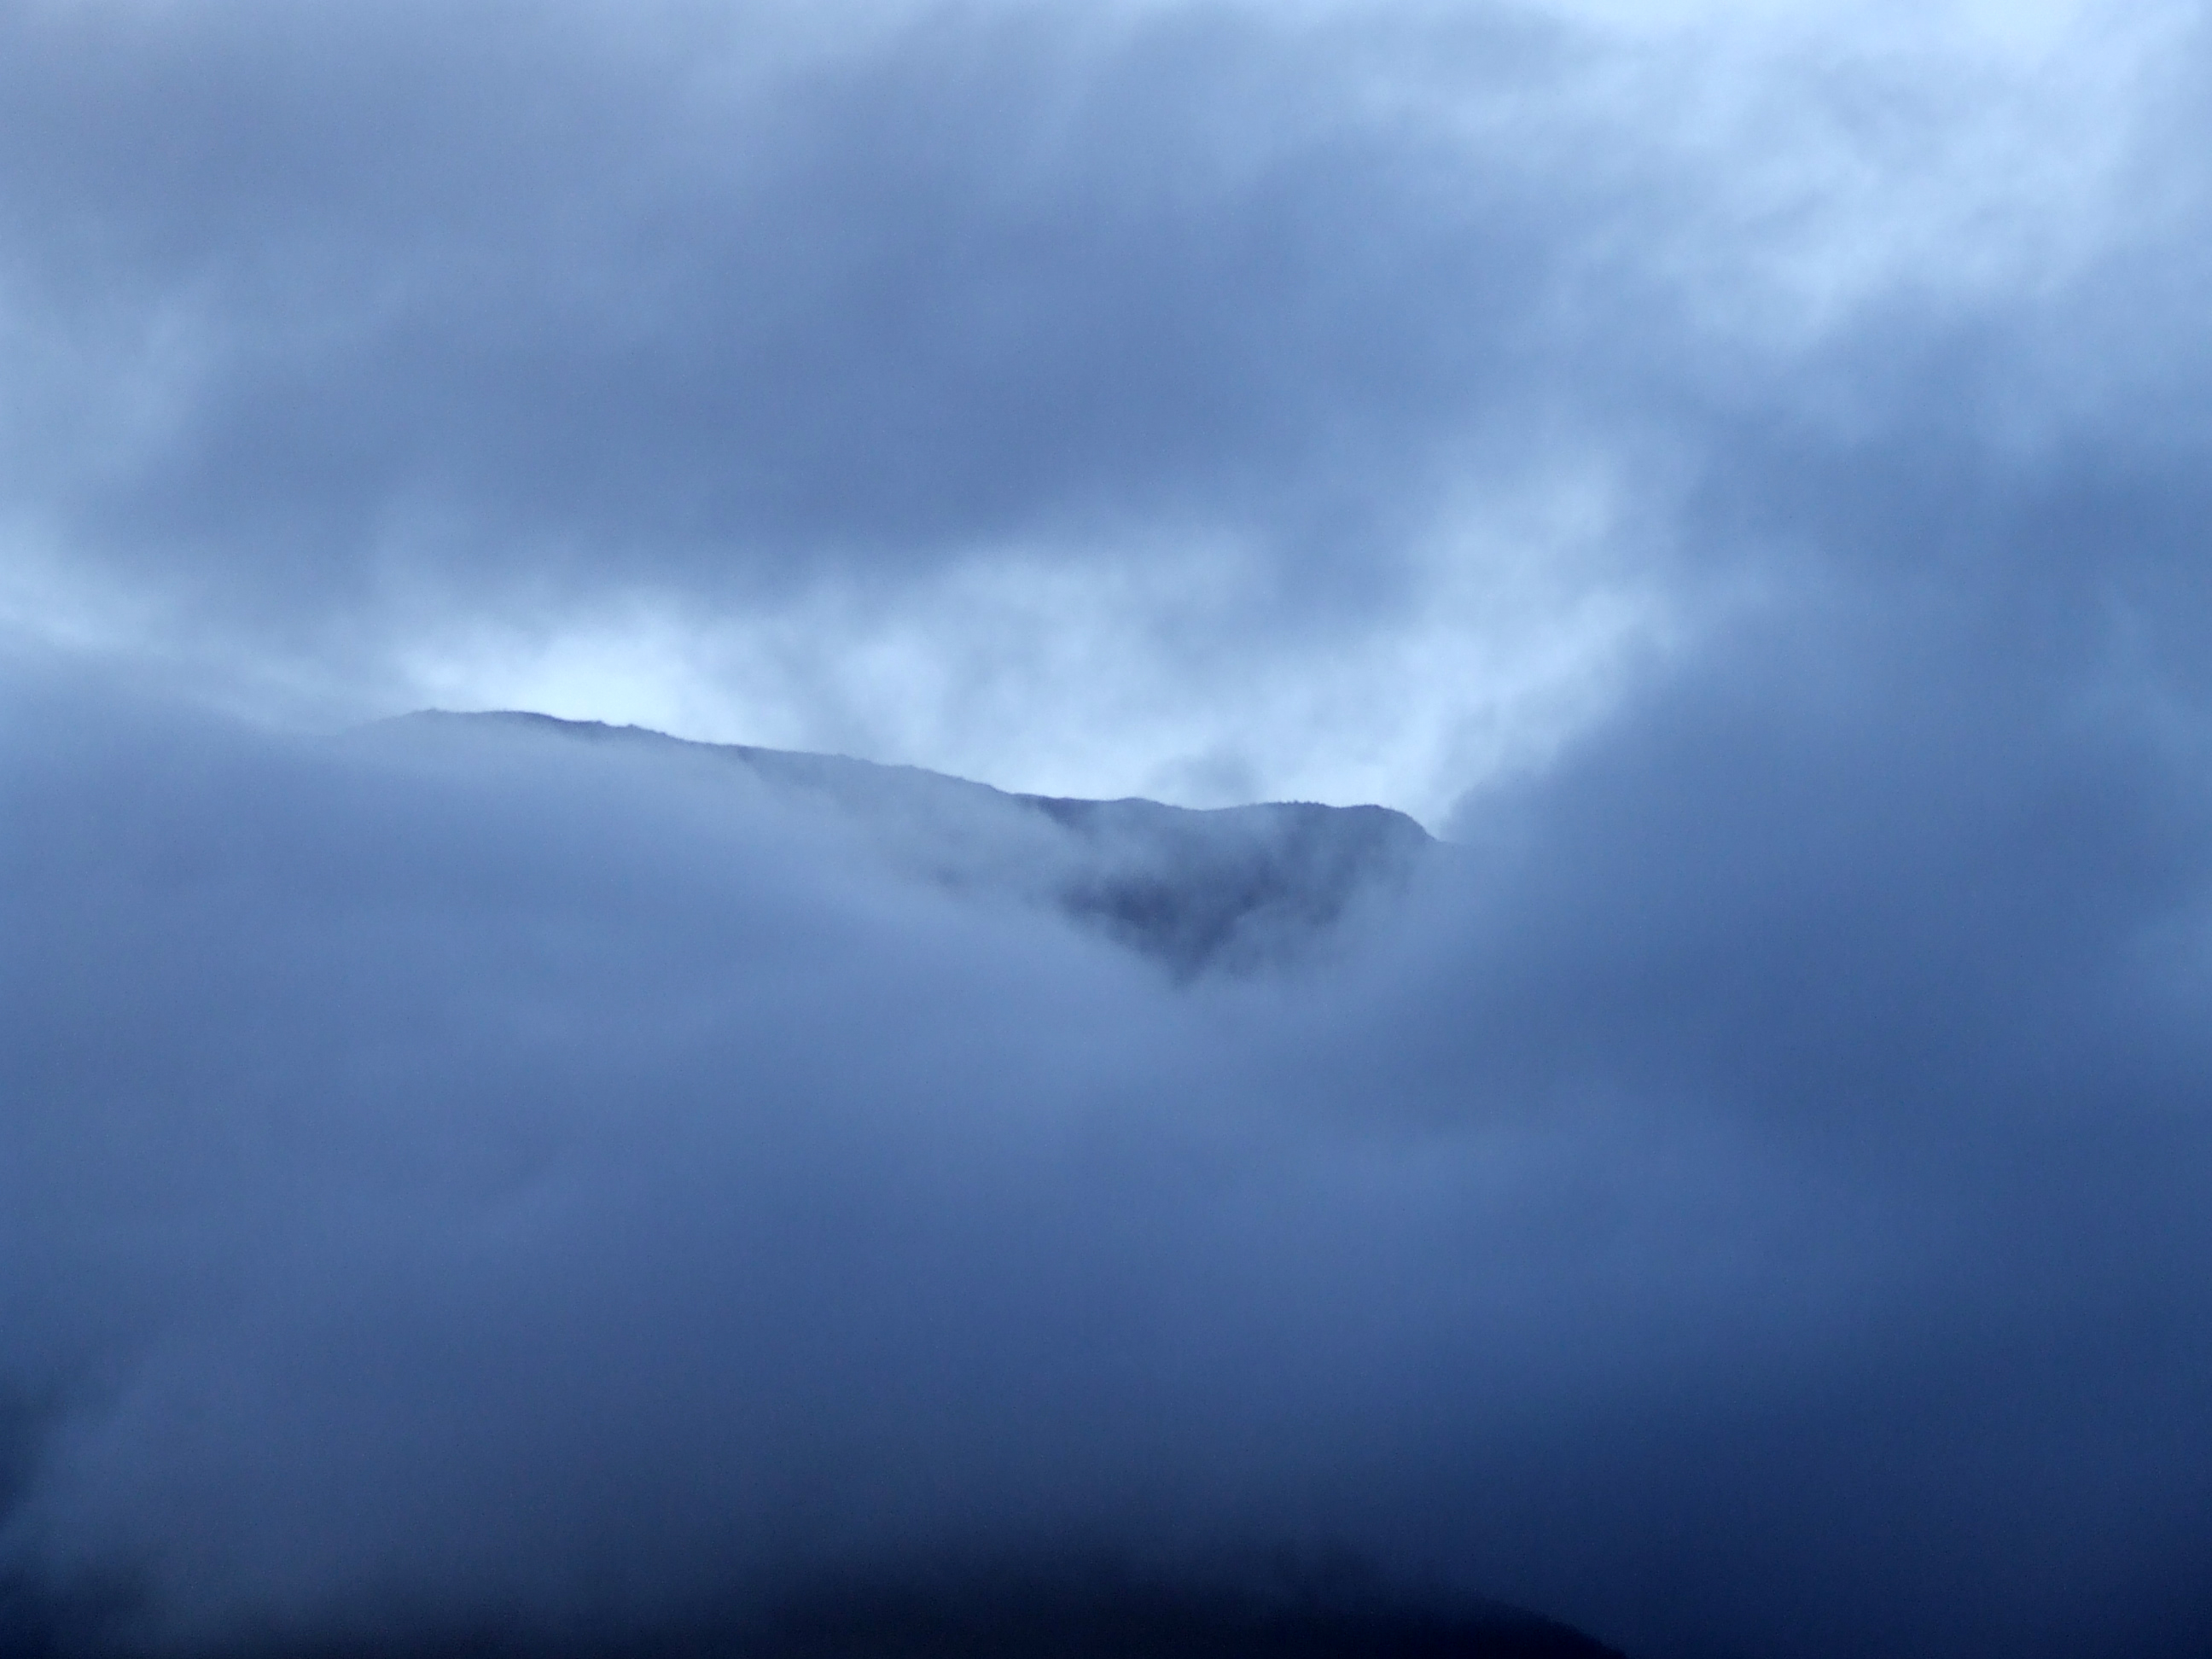 Fog and cloud covering a mountain